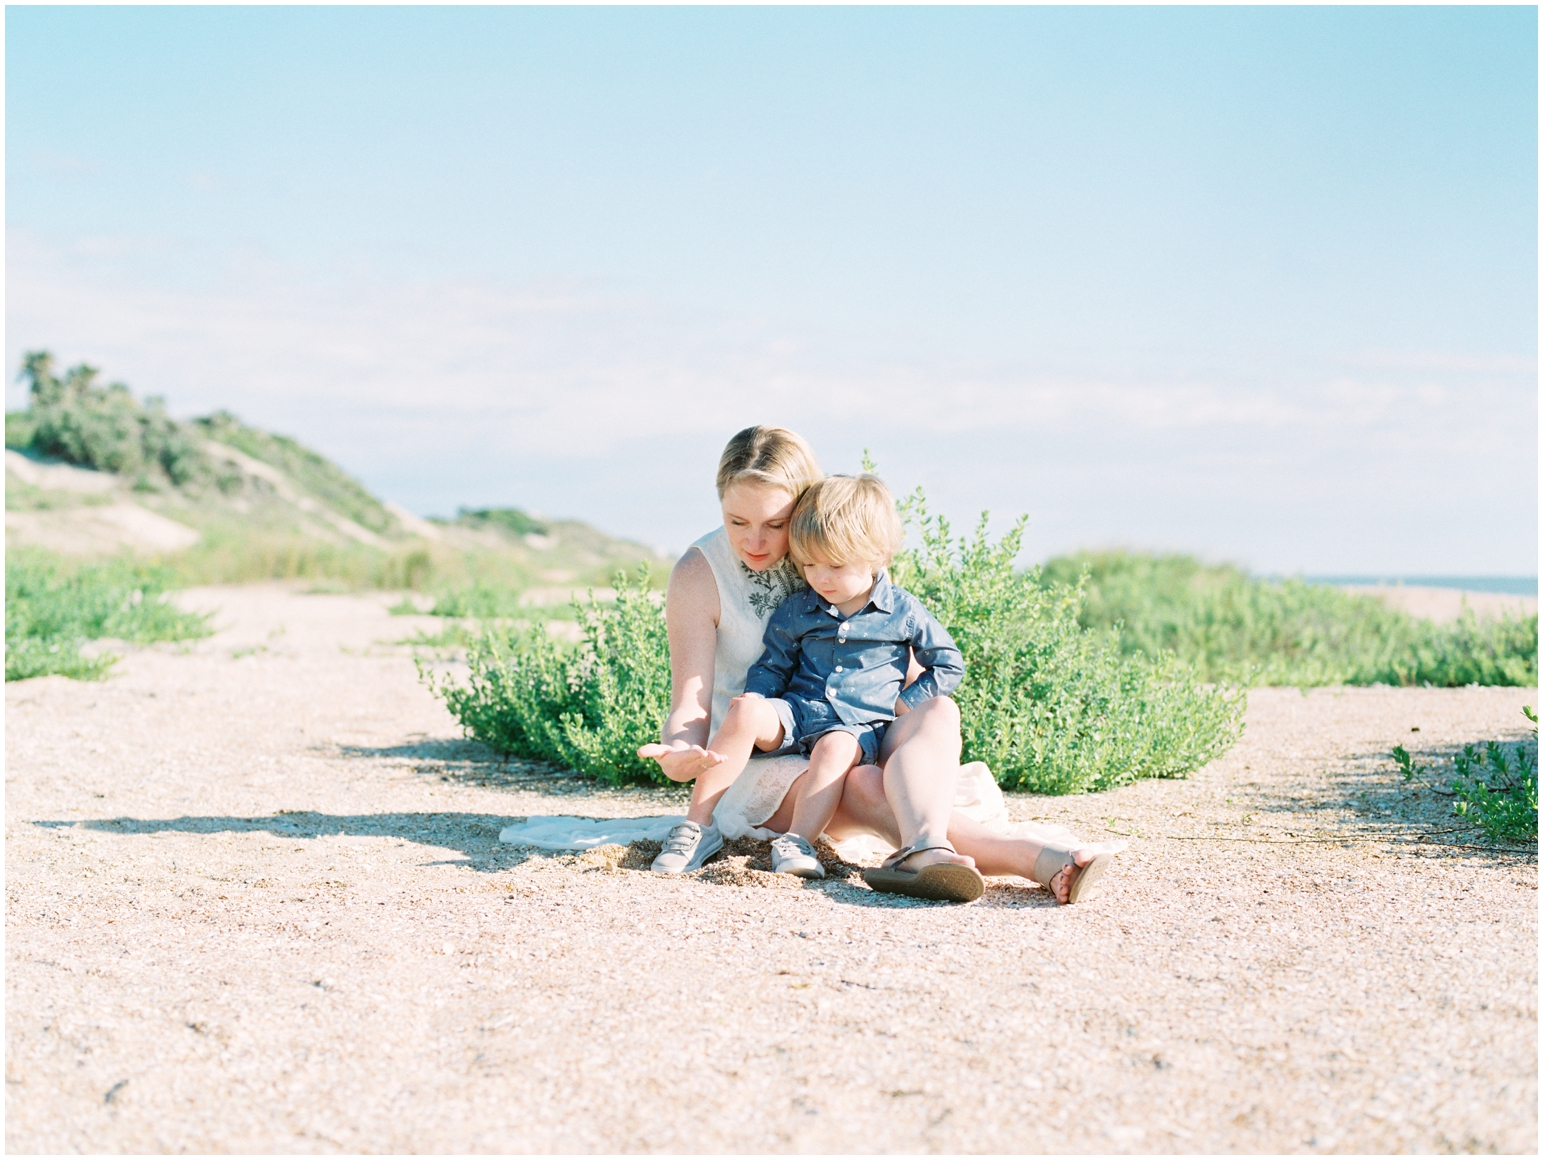 Lisa Silva Photography- Jacksonville, St. Augustine, Amelia Island, Ponte Vedra Beach, North East Florida Fine Art Film Photographer- Mommy and Me Lifestyle Session in Ponte Vedra Beach_001a.jpg